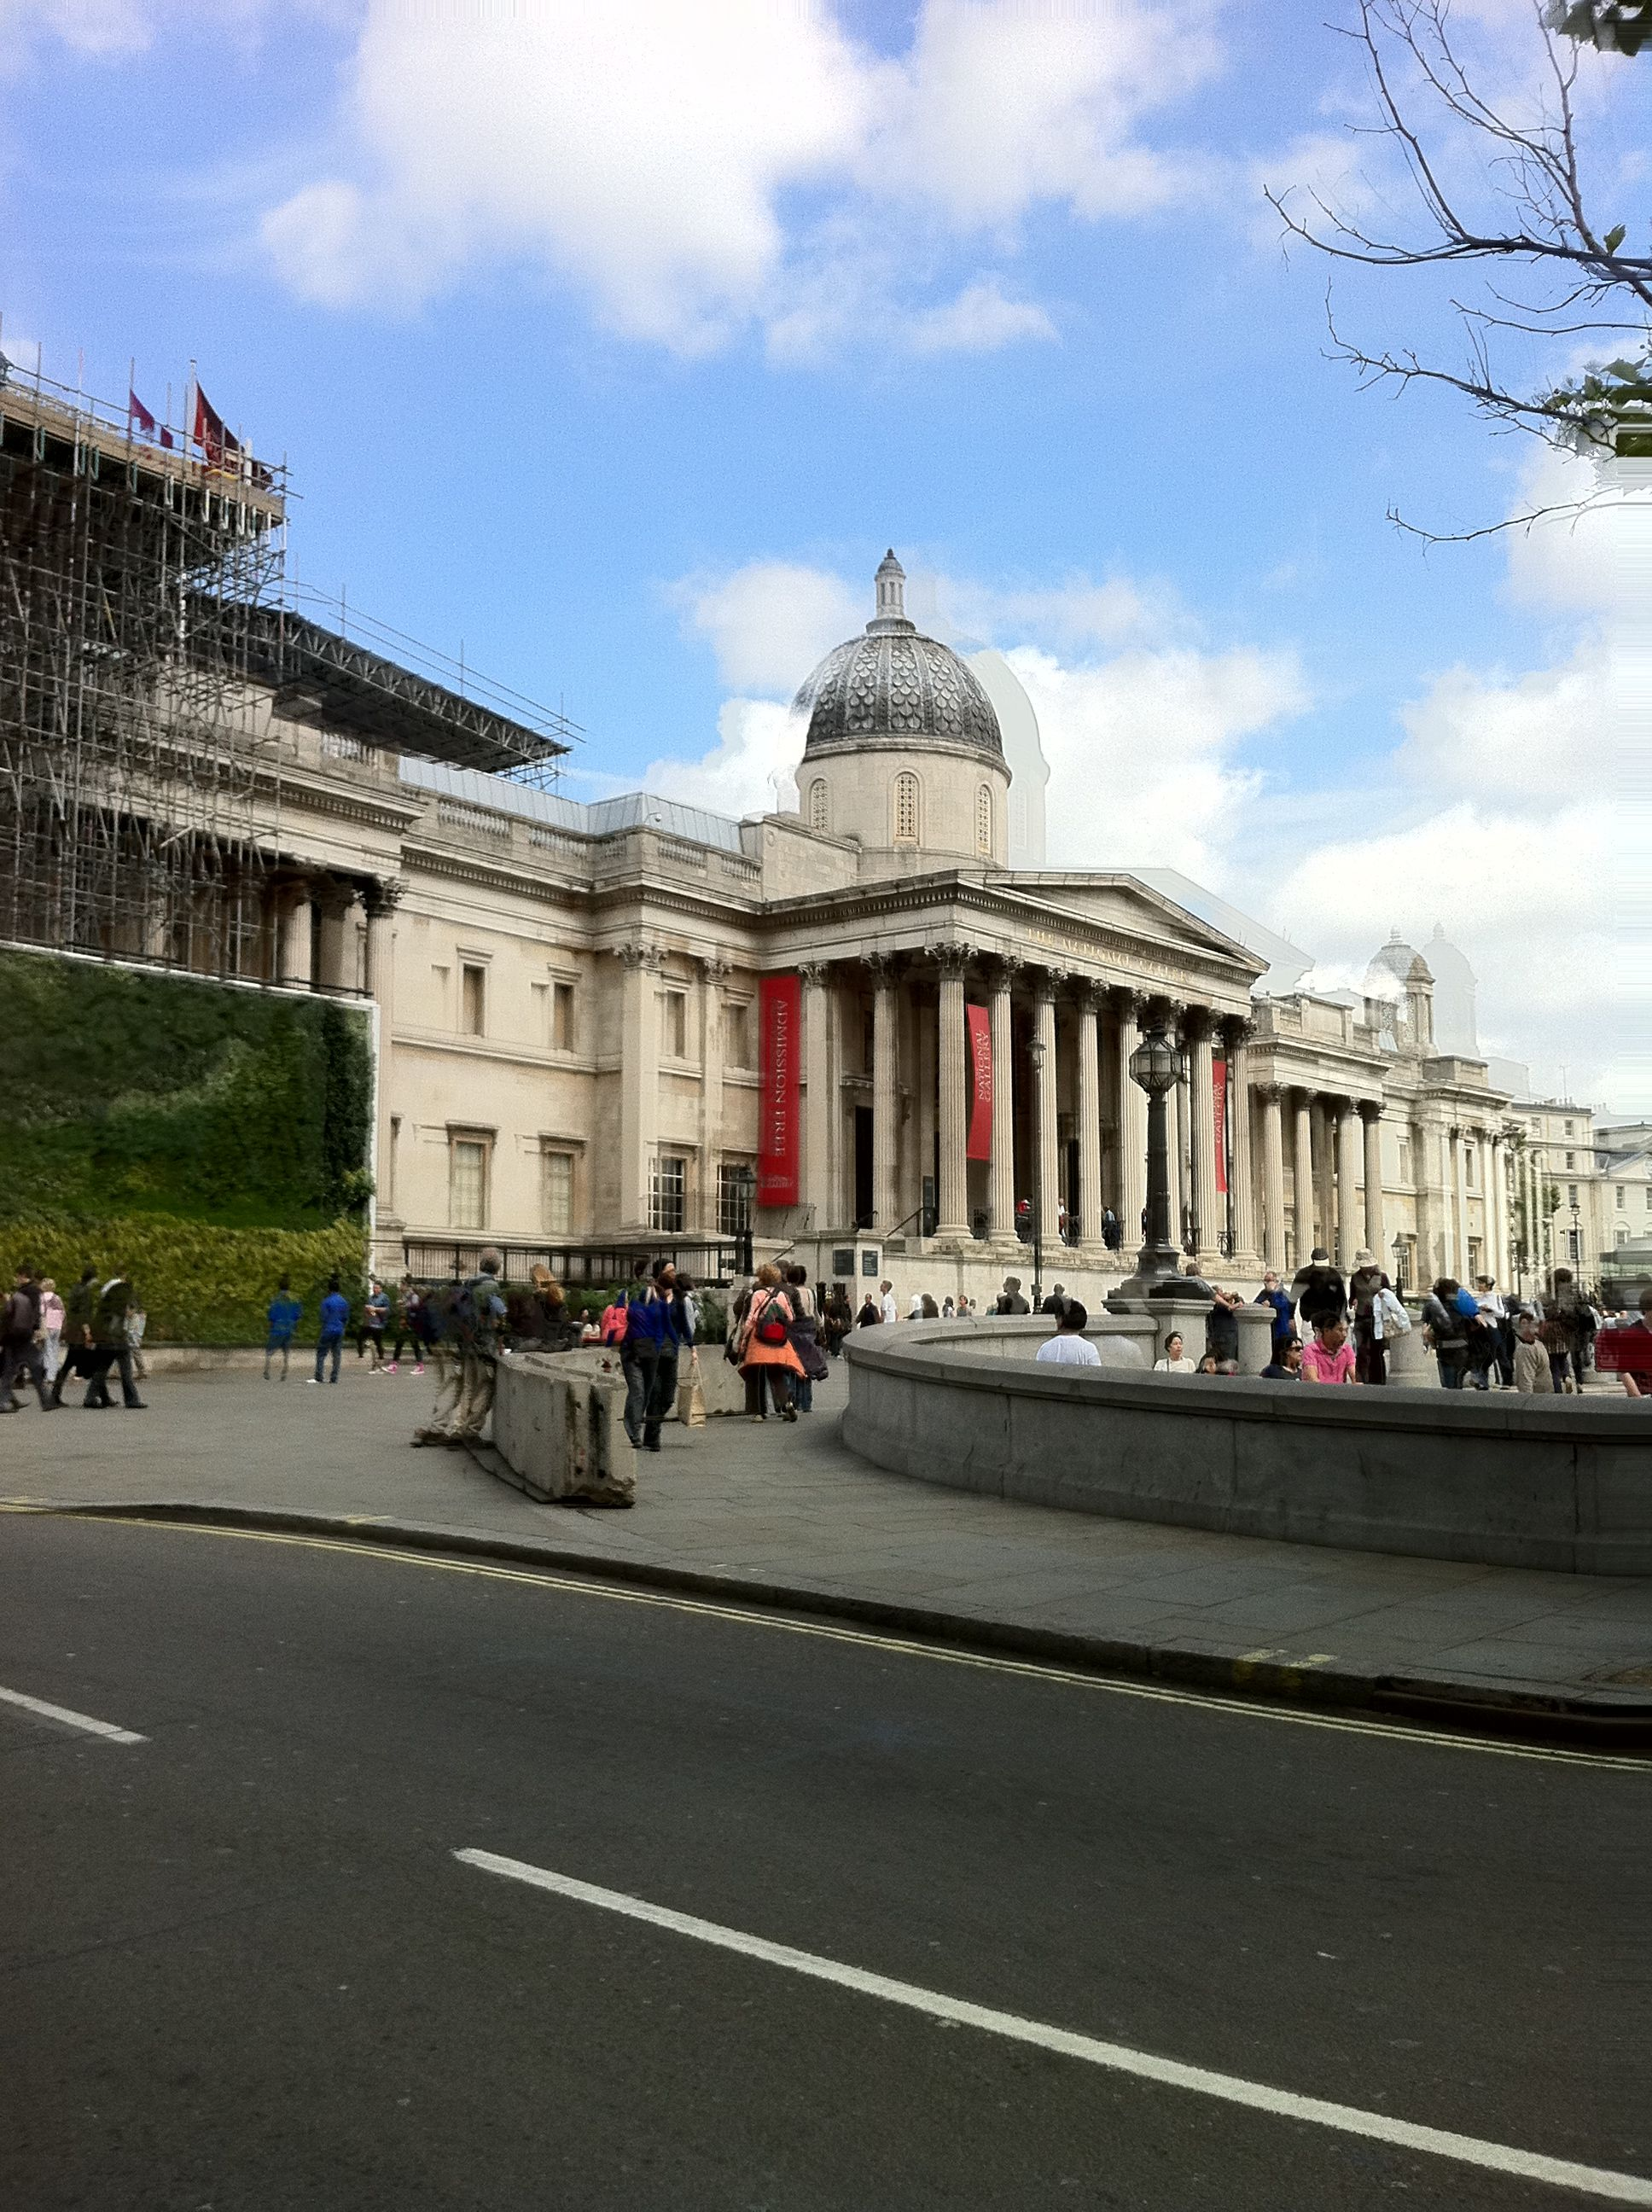 National Gallery, in arrivo.